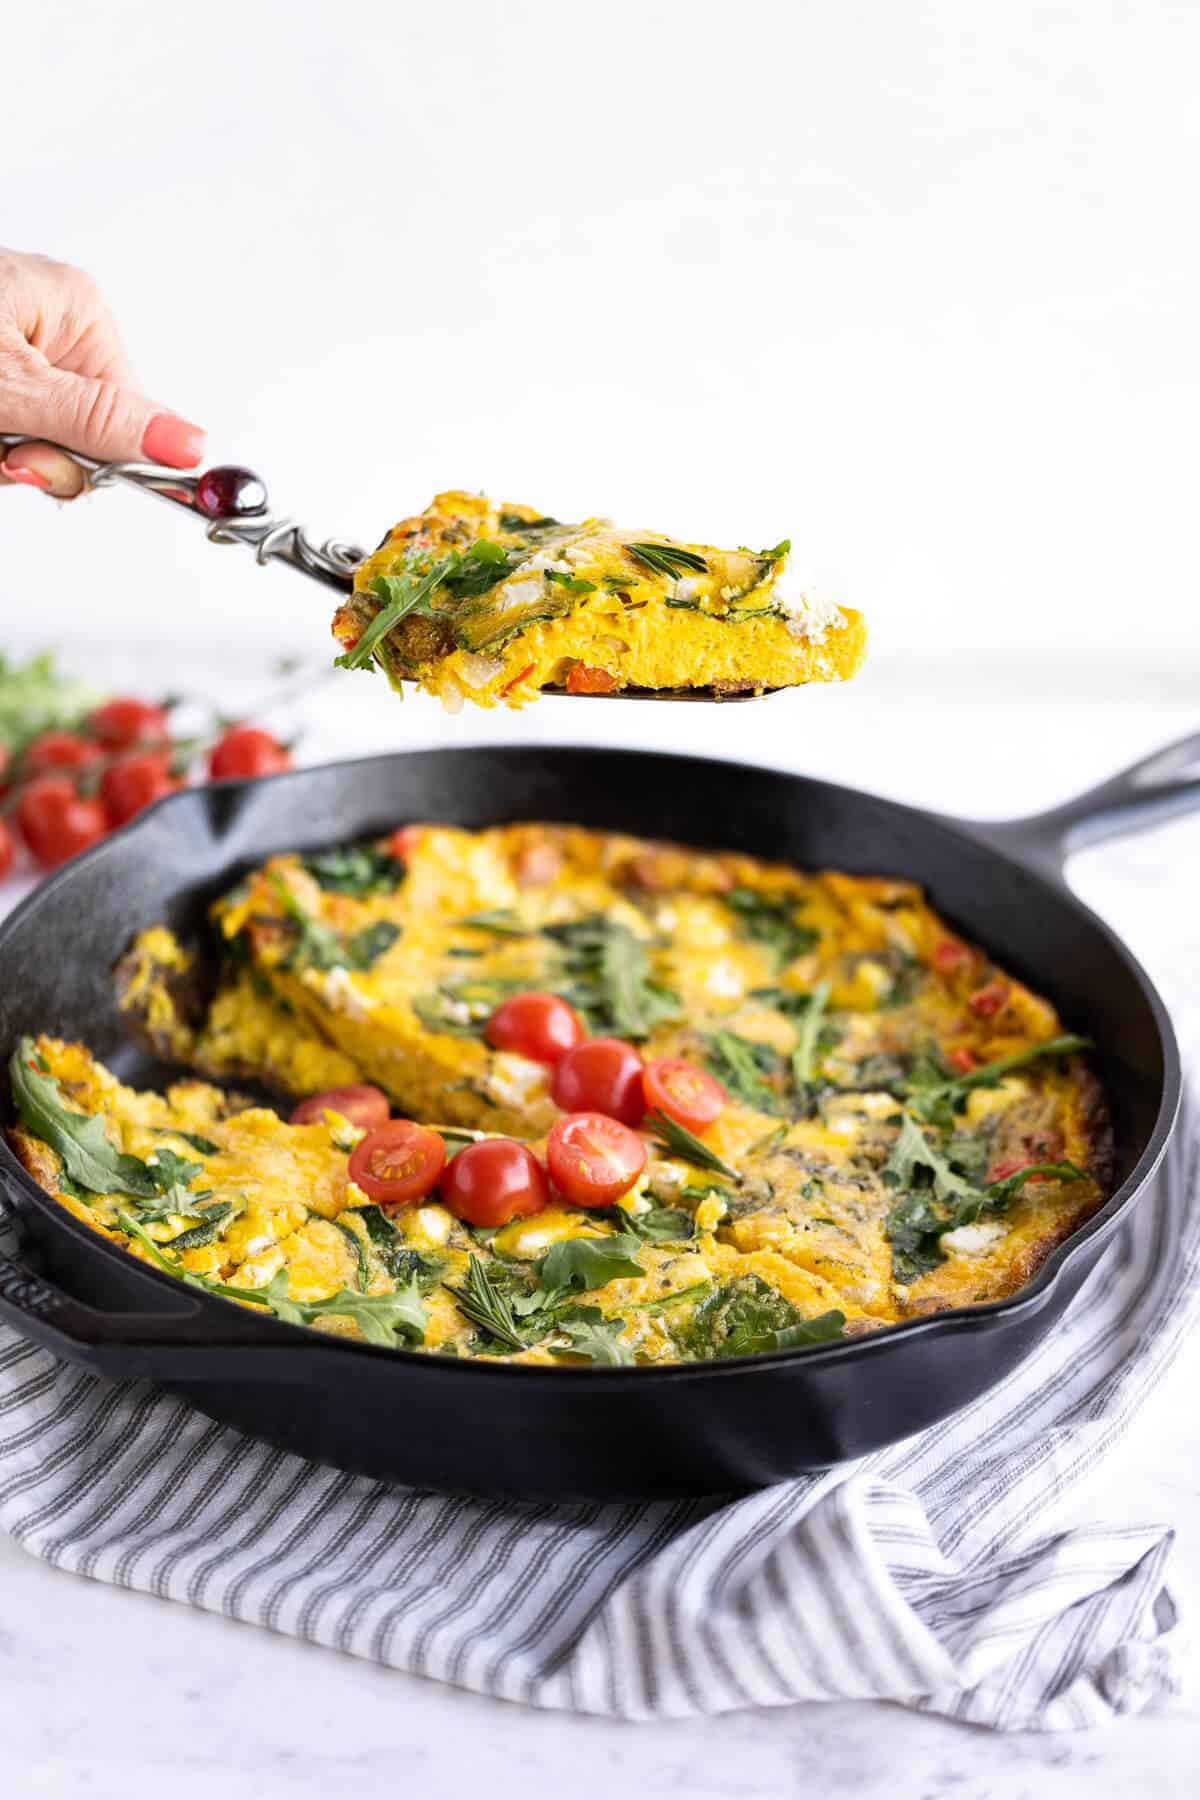 slice of frittata on a spatula being held above the whole frittata in a cast iron pan